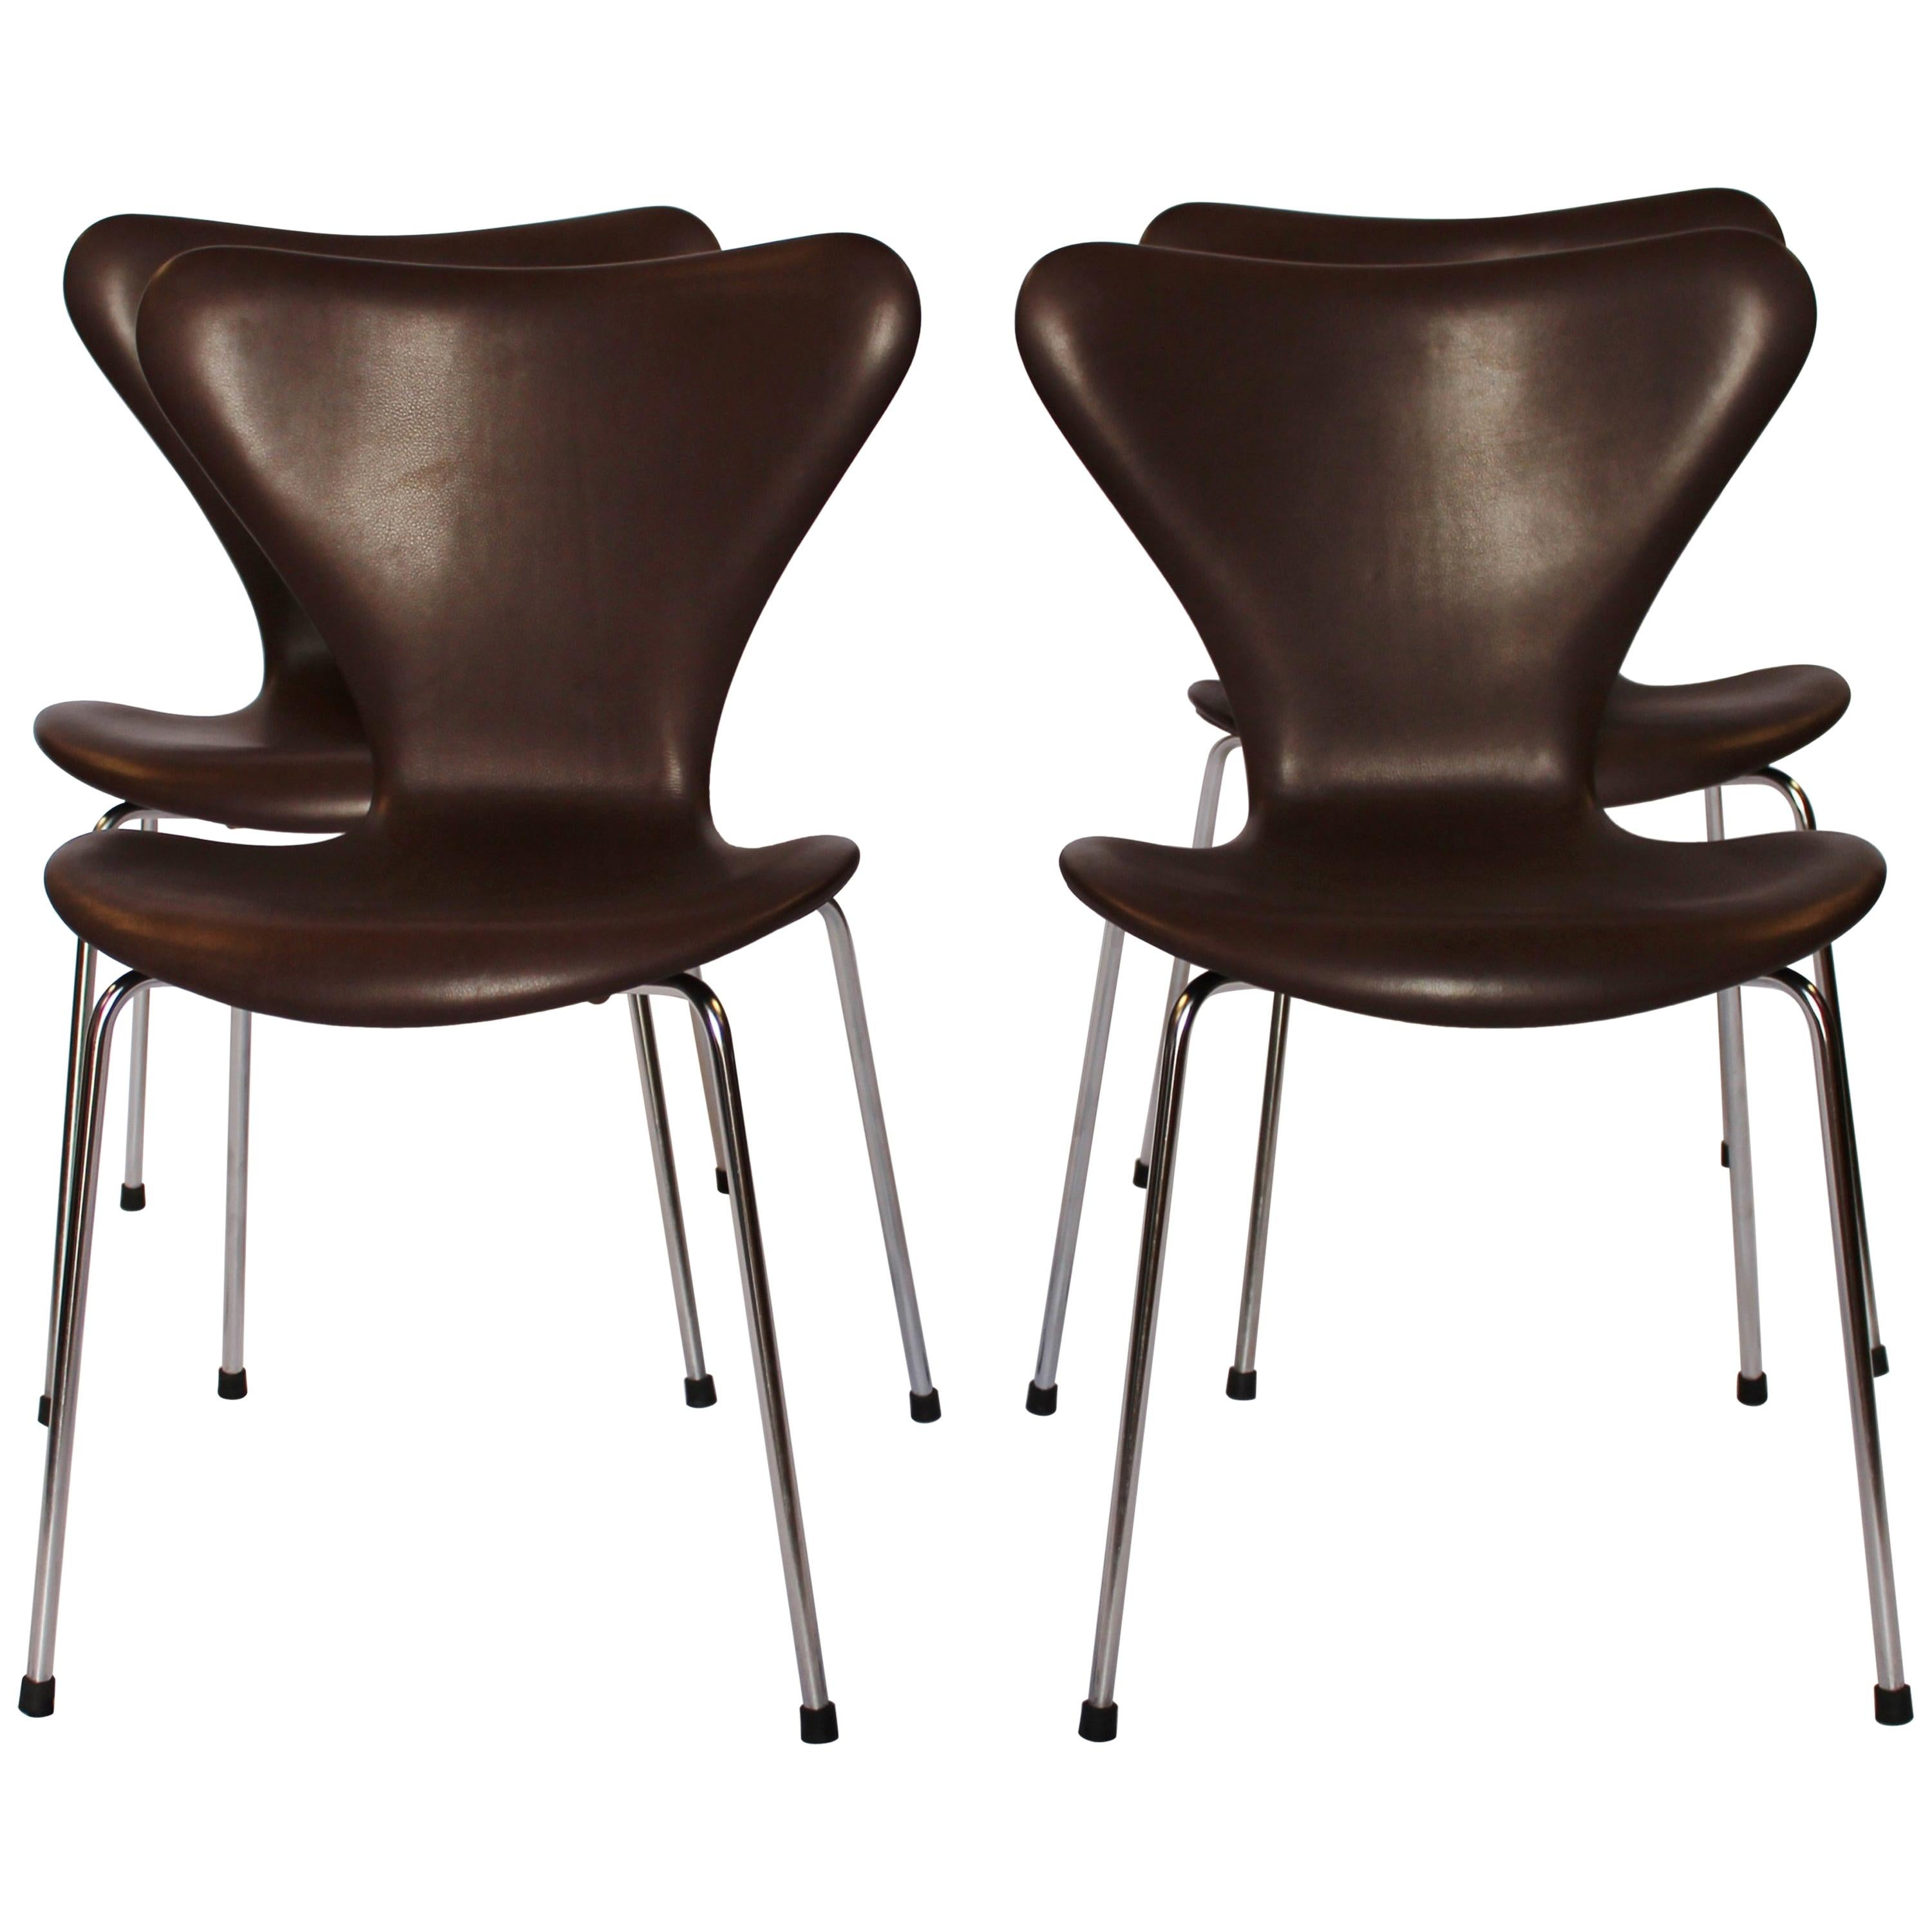 Set of 4 Series 7 Chairs, Model 3107, by Arne Jacobsen and Fritz Hansen, 1967